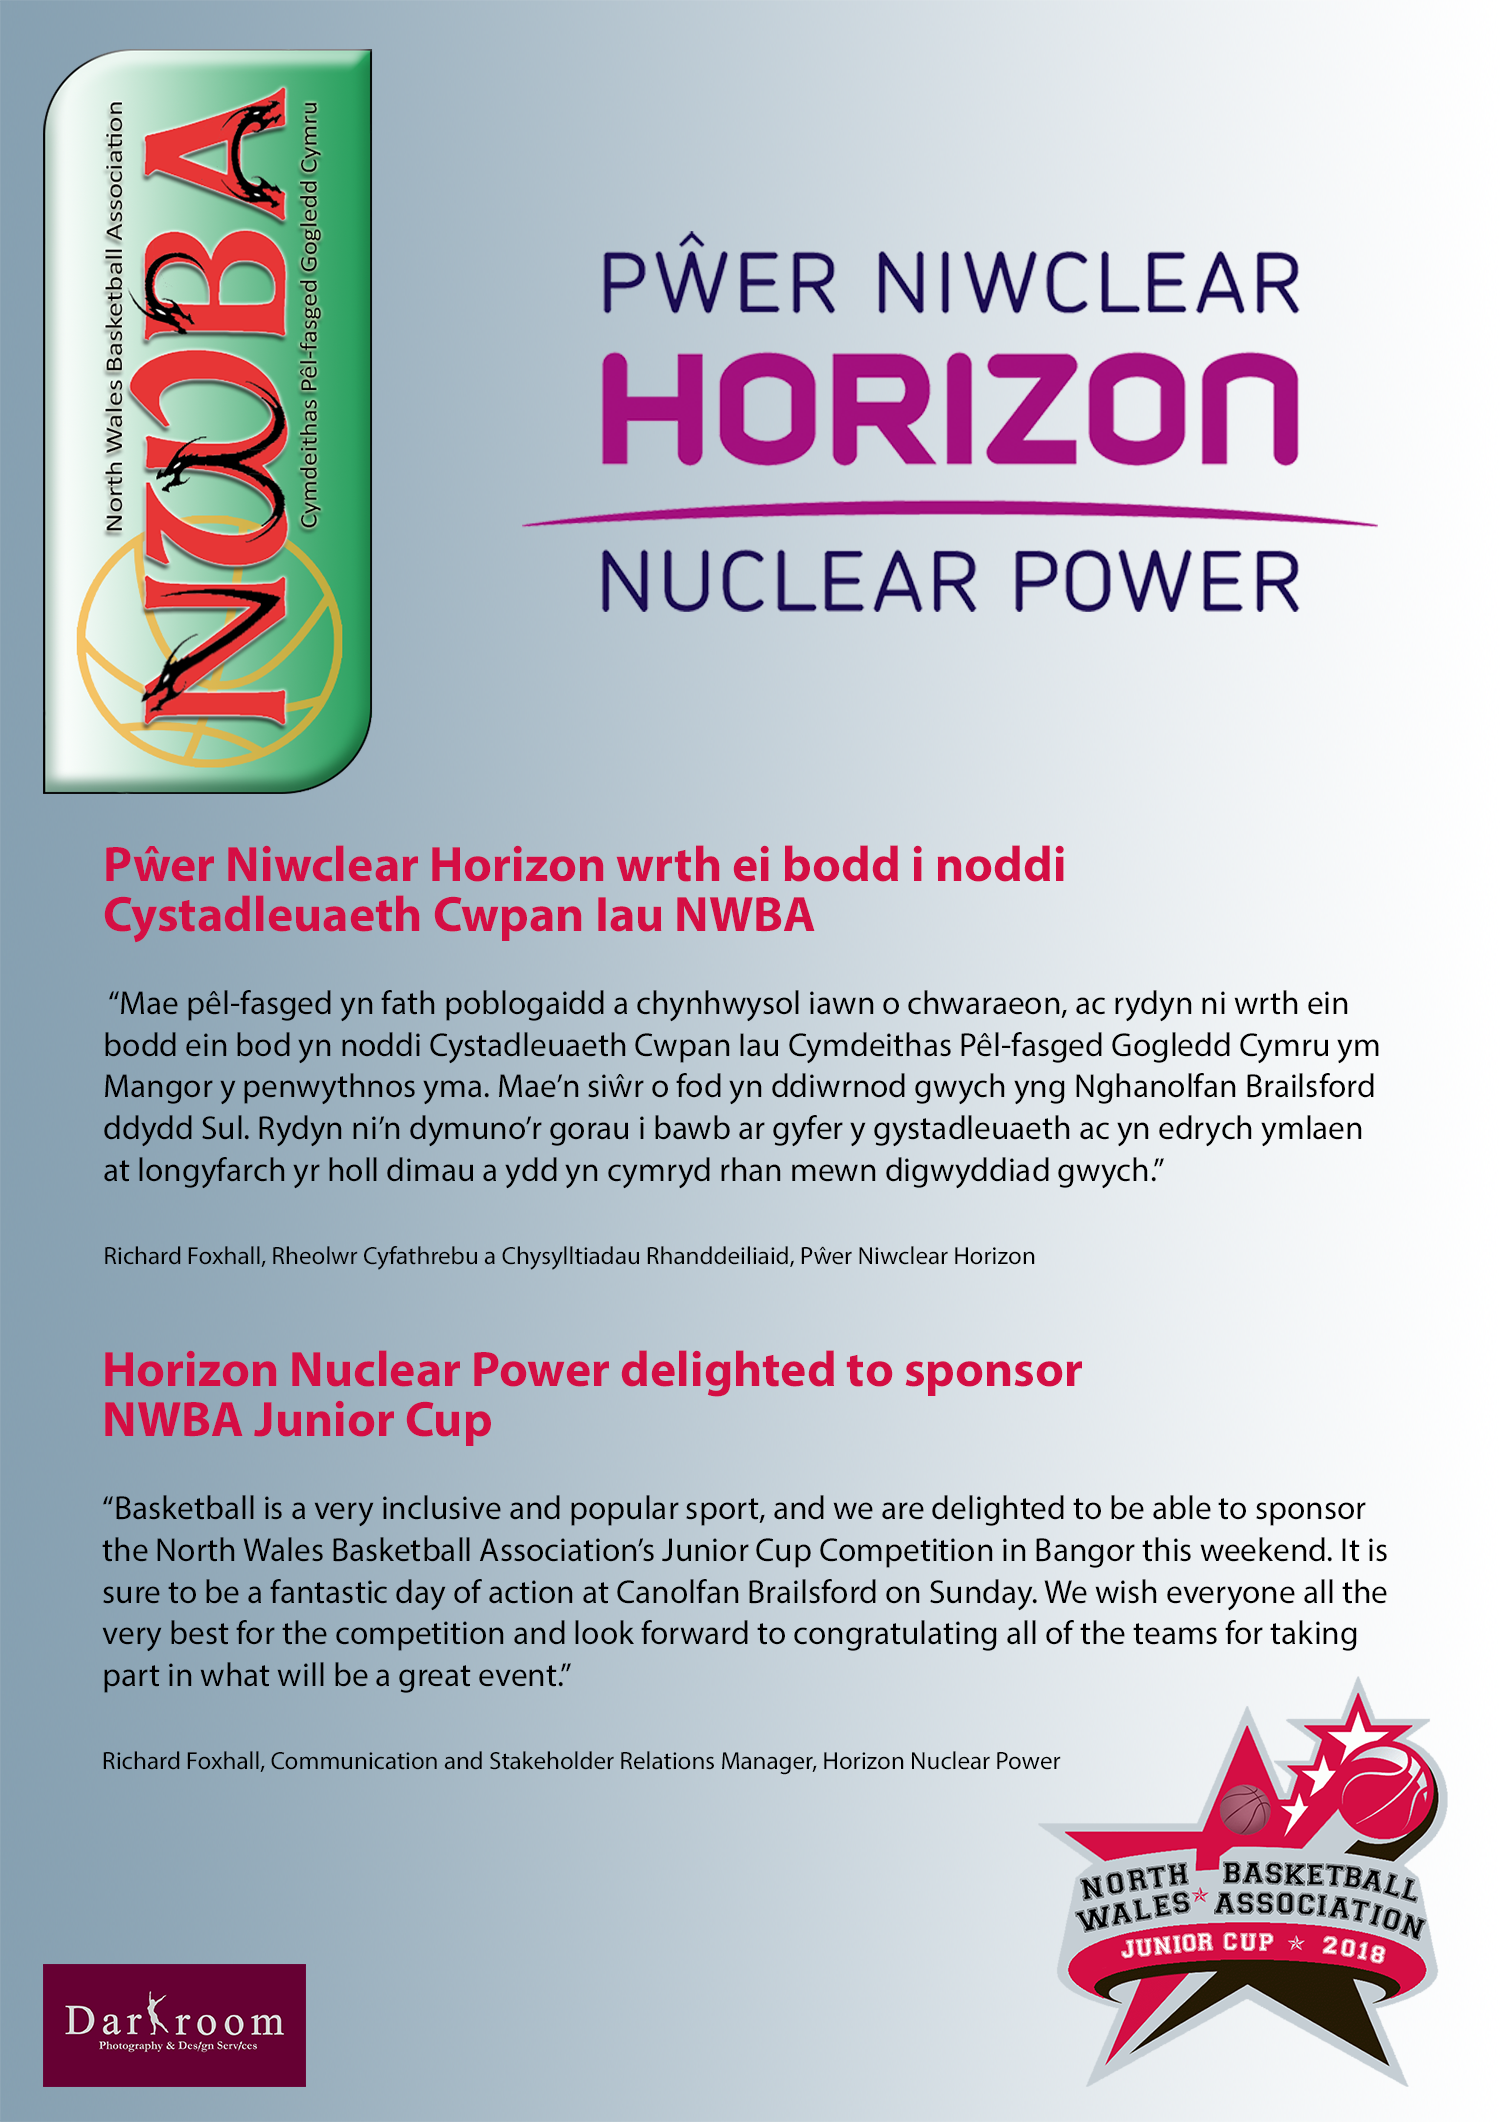 NWBA Junior Cup Horizon Article 12.04.18